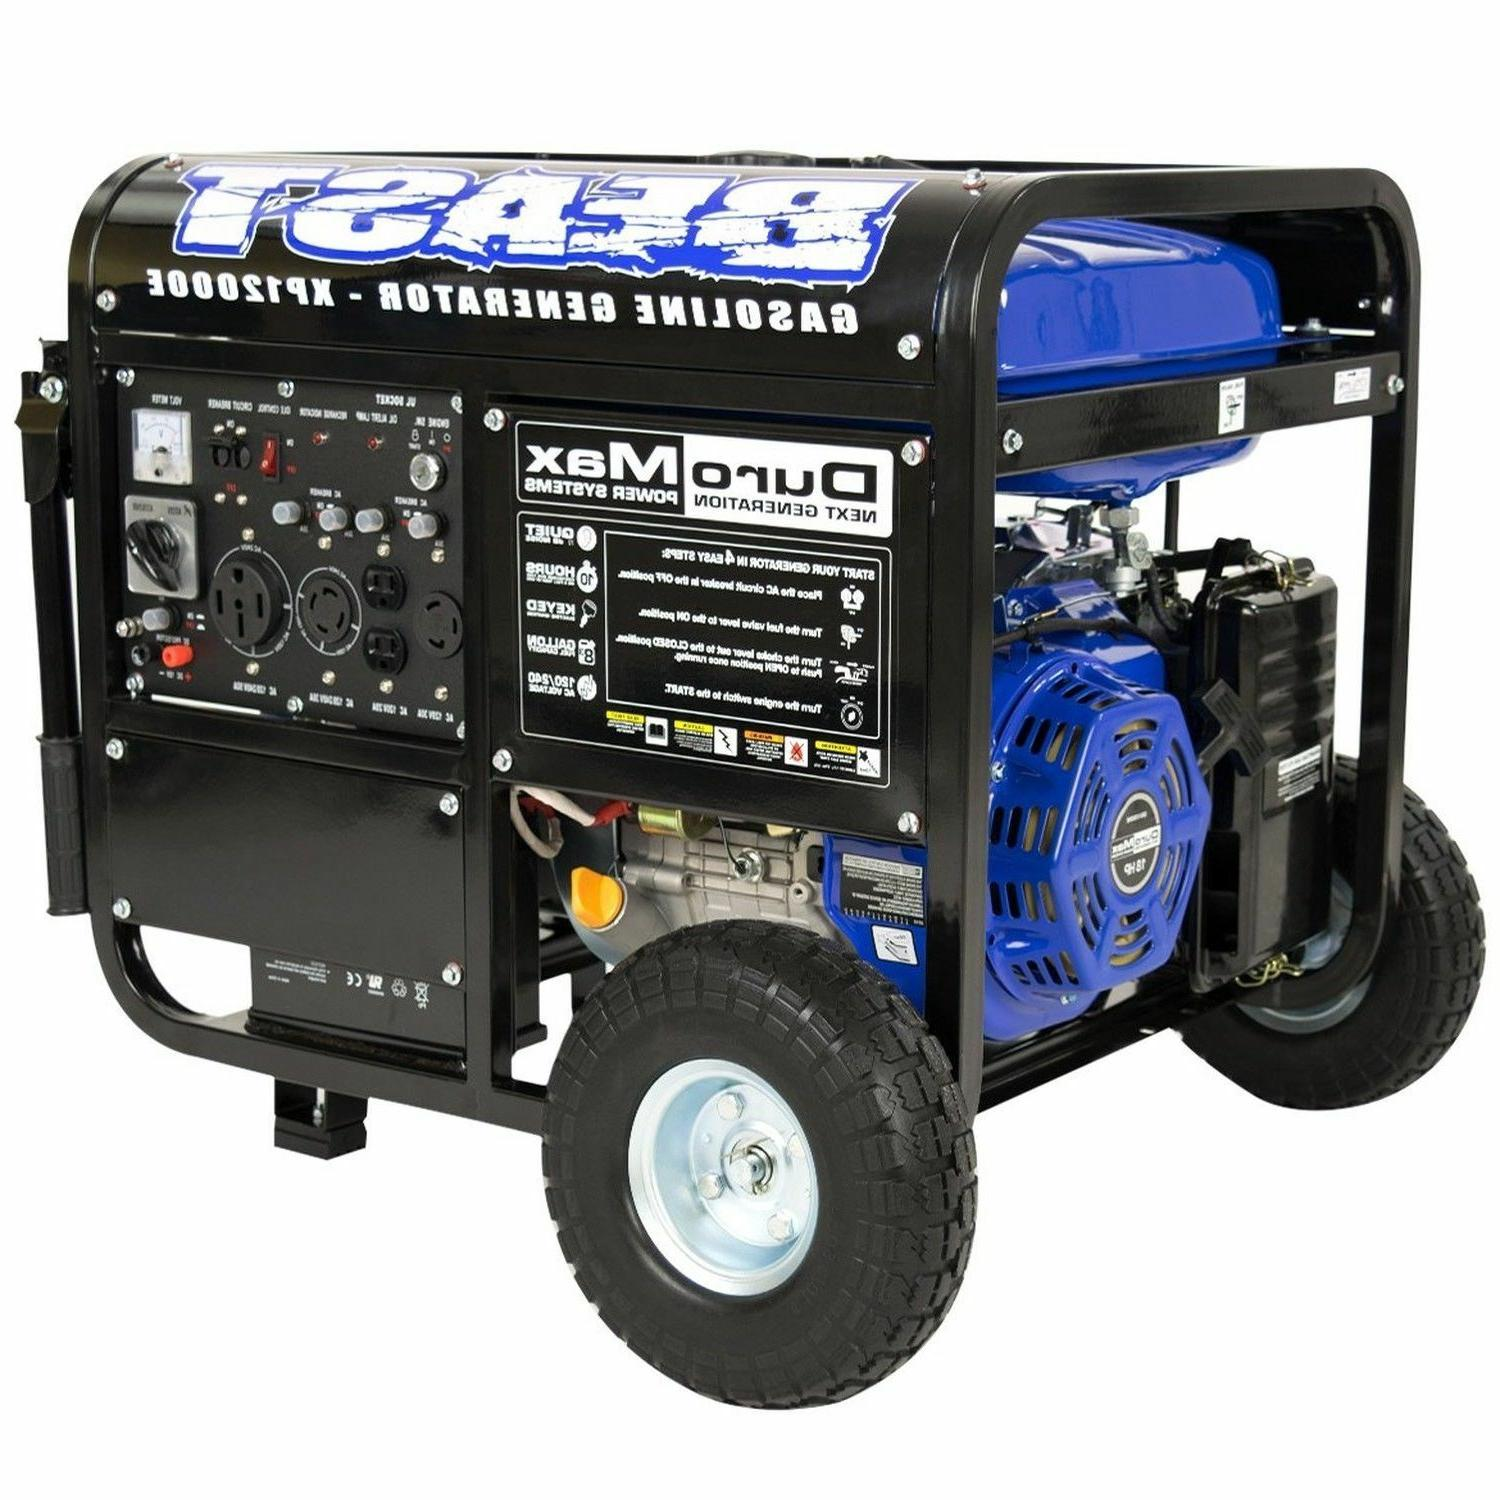 DuroMax 12000 Portable Gas Generator Standby BEAST